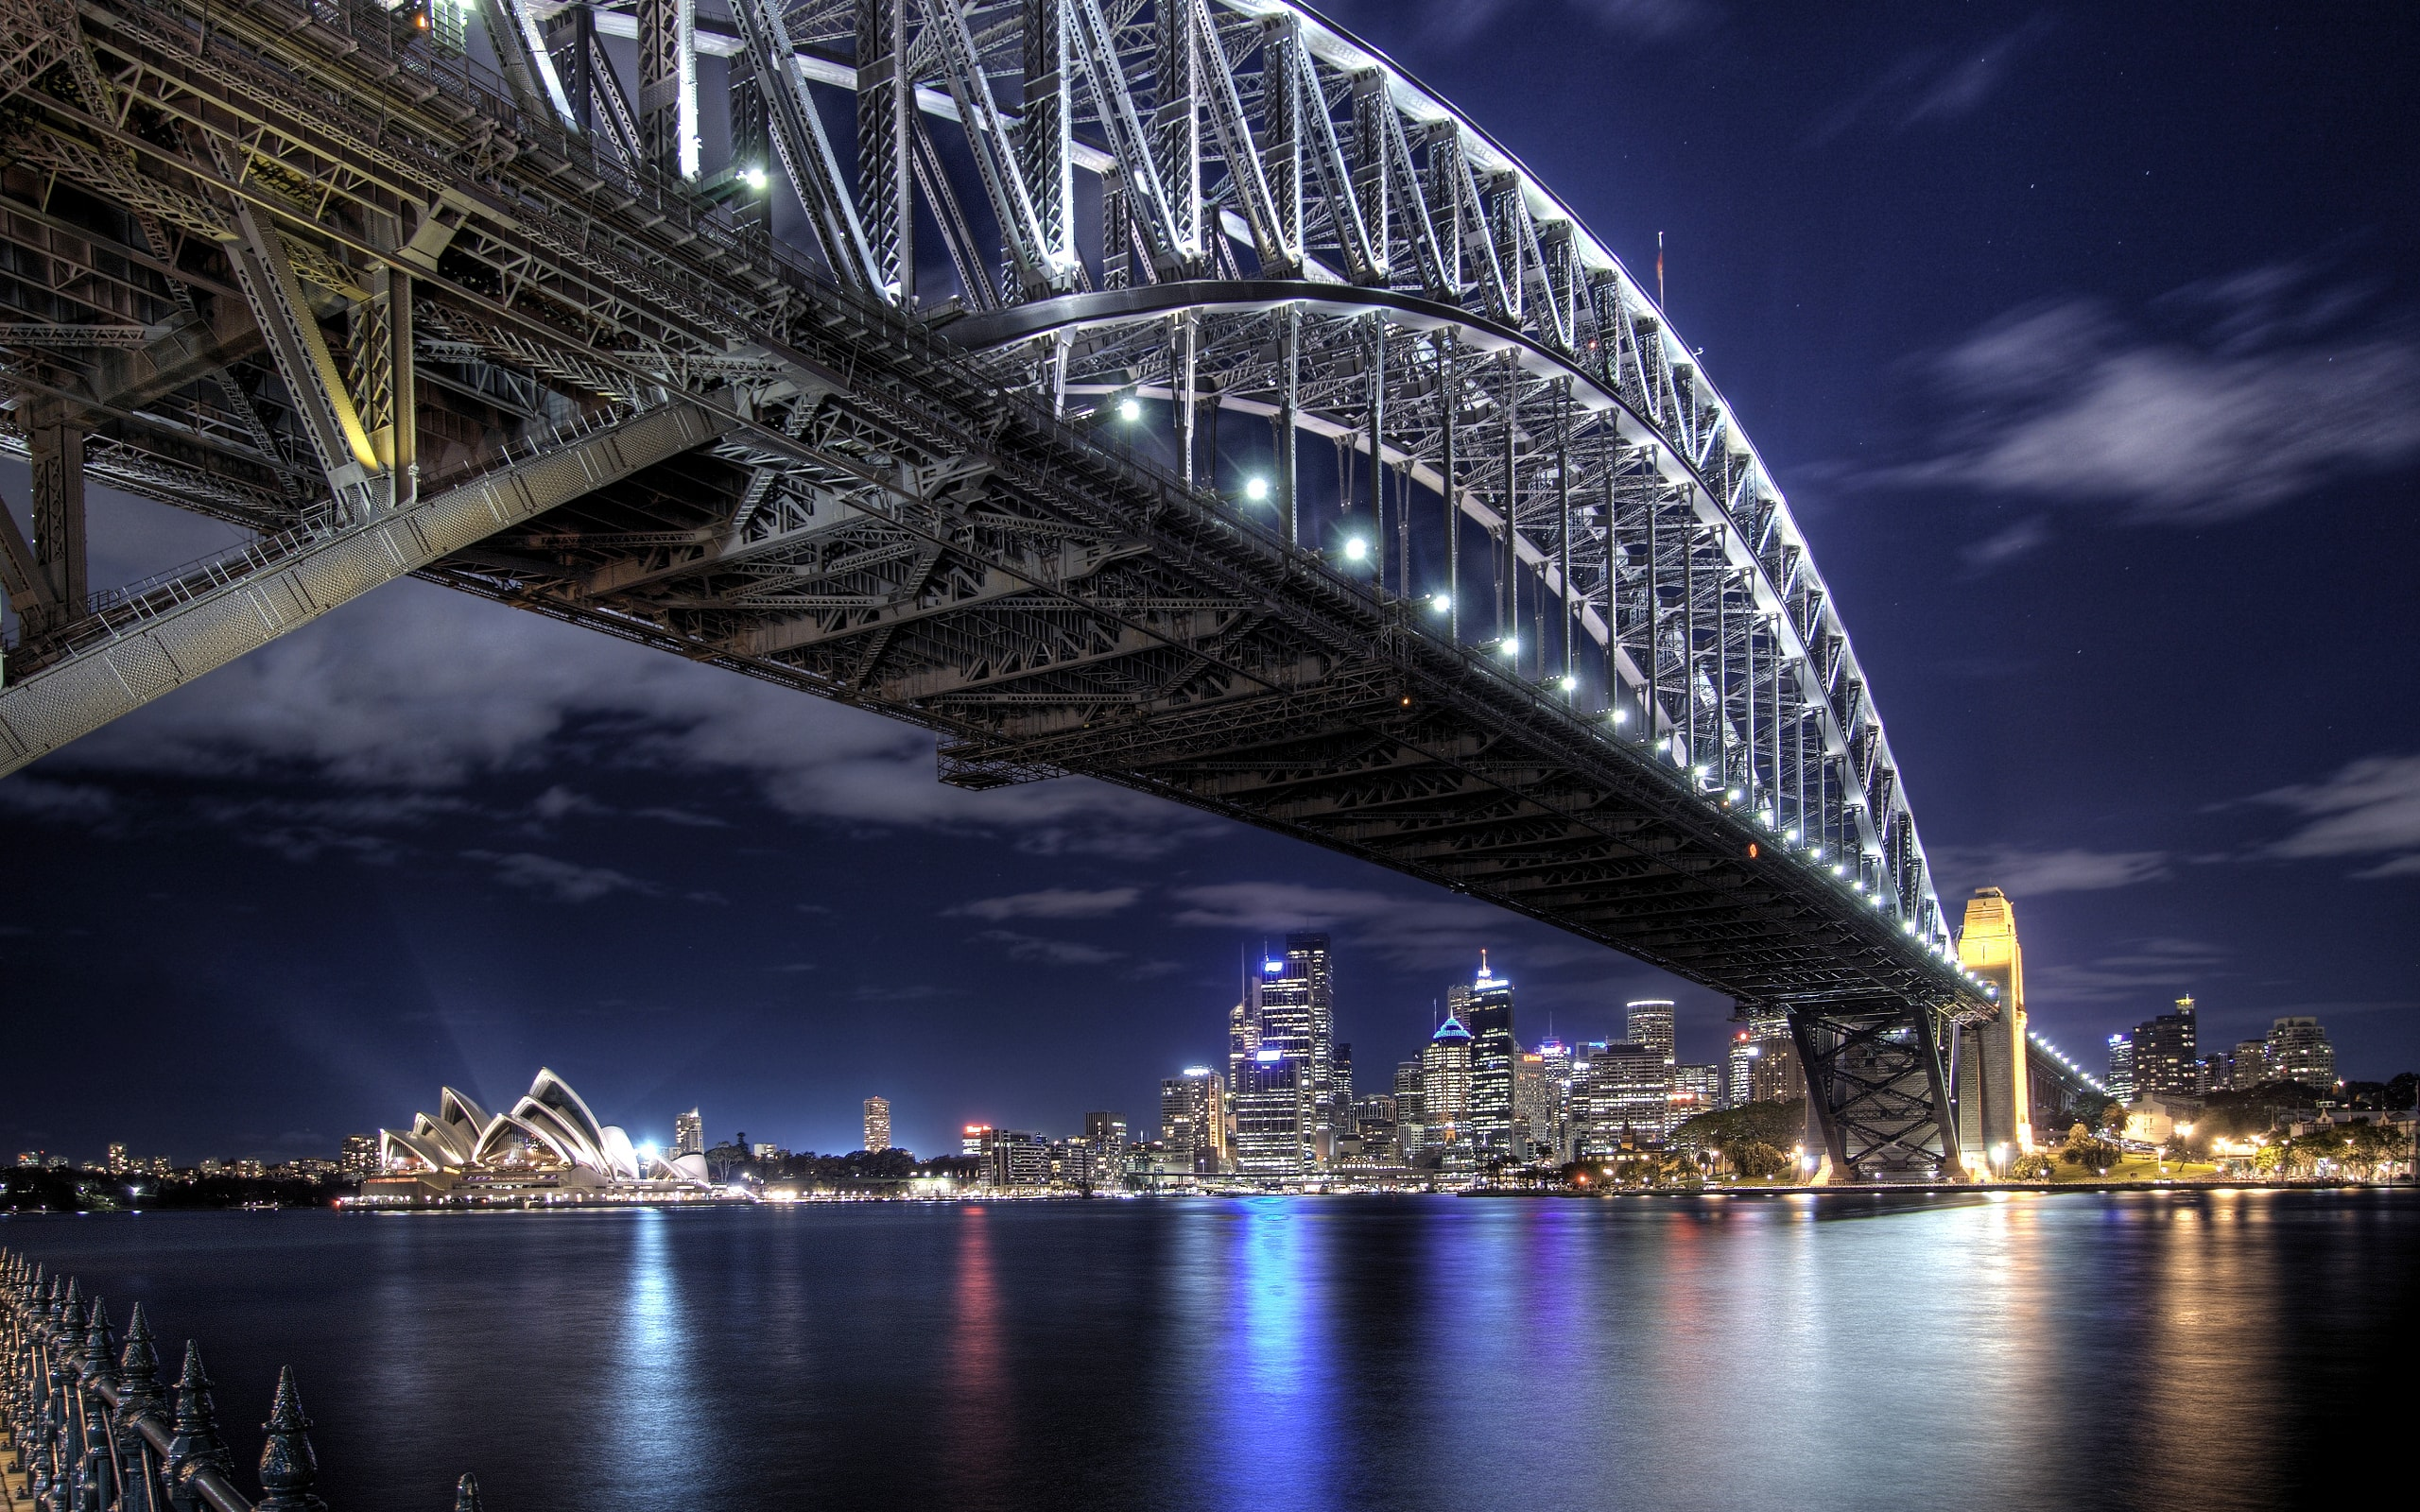 Sydney widescreen for desktop